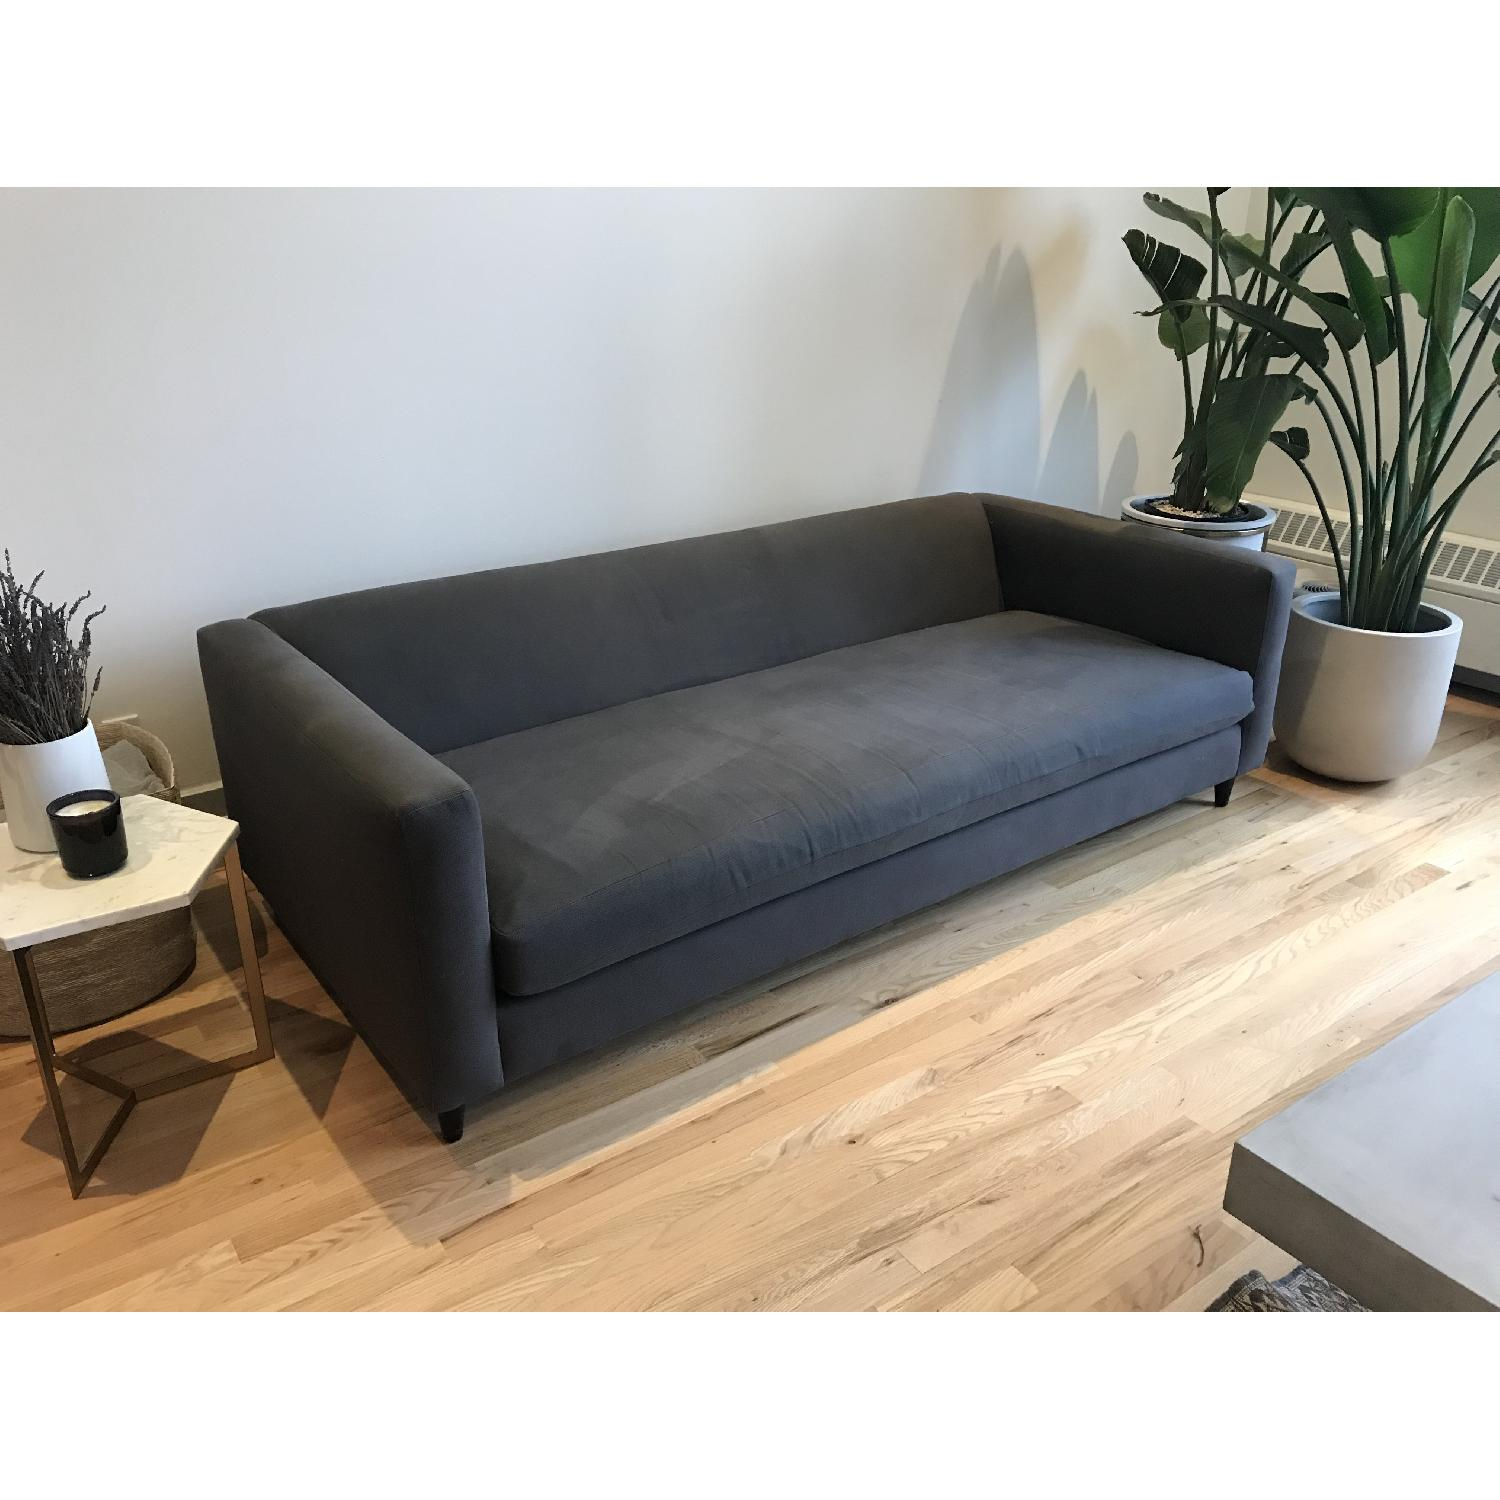 CB2 Movie Sofa in Dark Grey/Blue-1